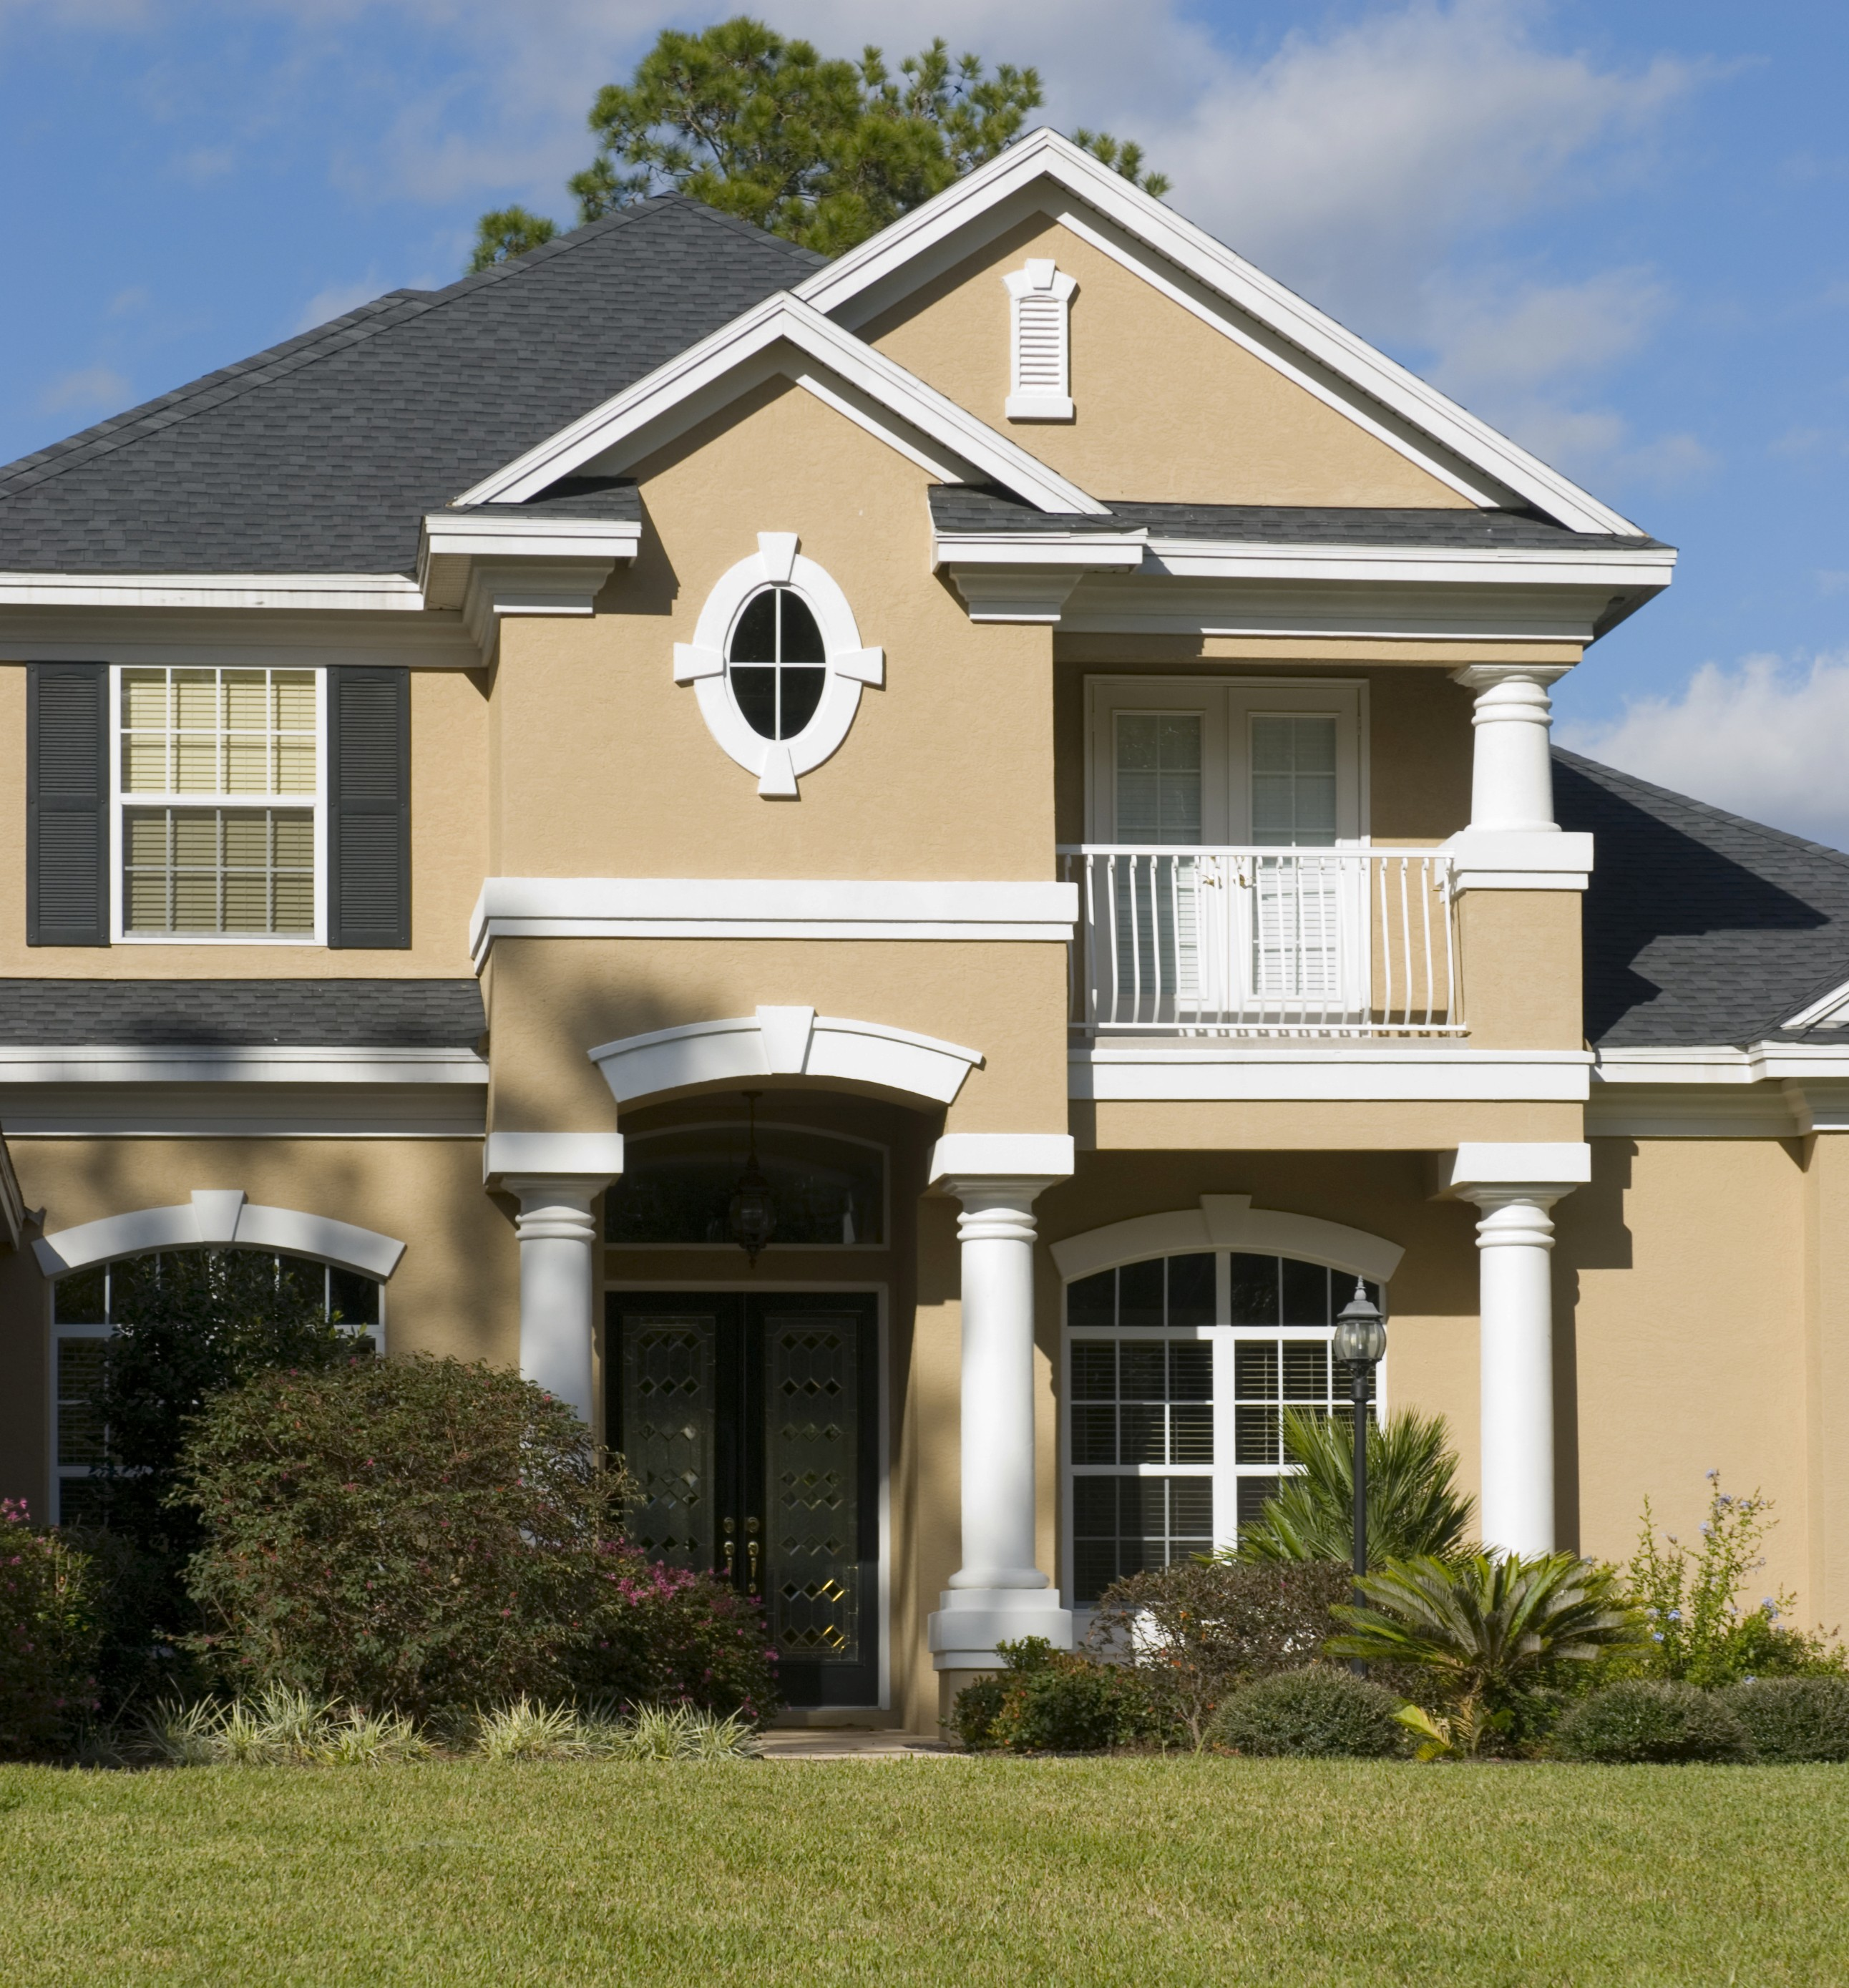 Fantastic Exterior Colors For Houses Ideas Homesfeed Largest Home Design Picture Inspirations Pitcheantrous